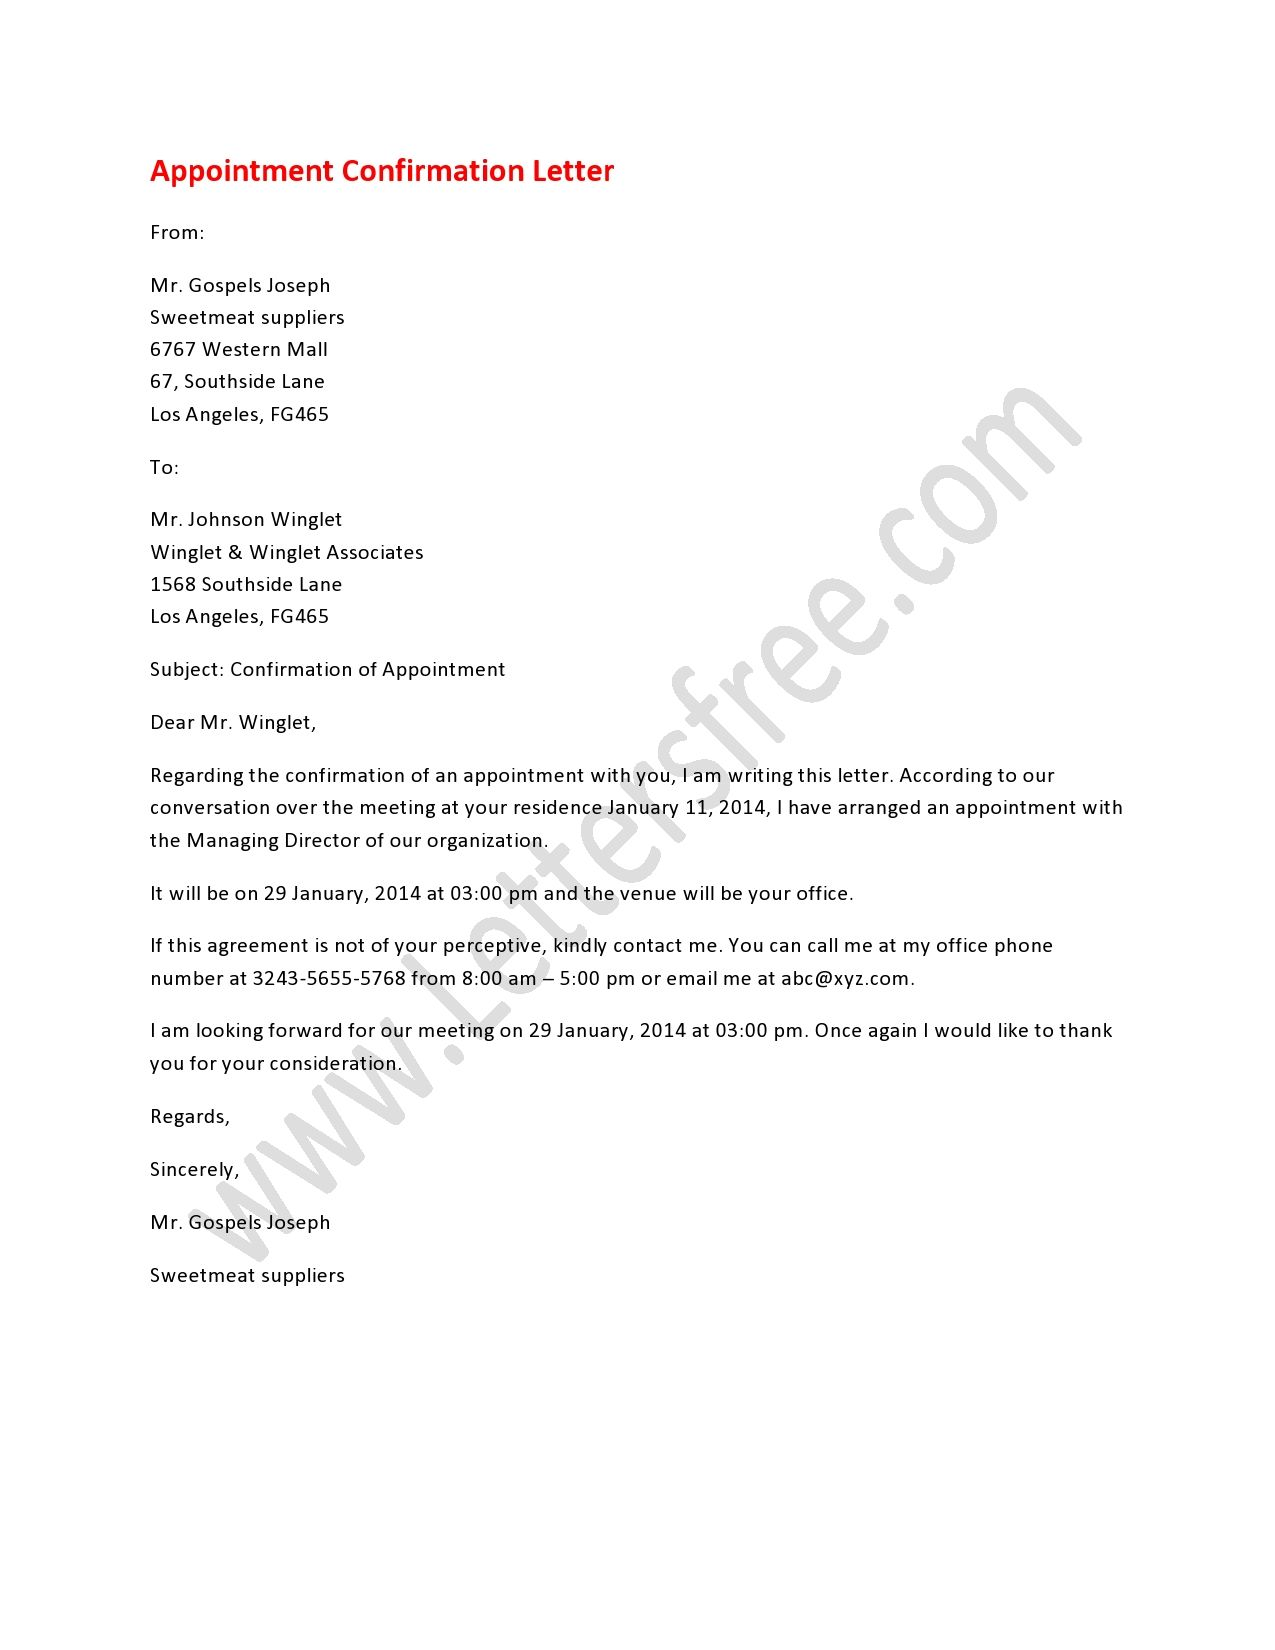 Appointment Confirmation Letter Confirmation letter